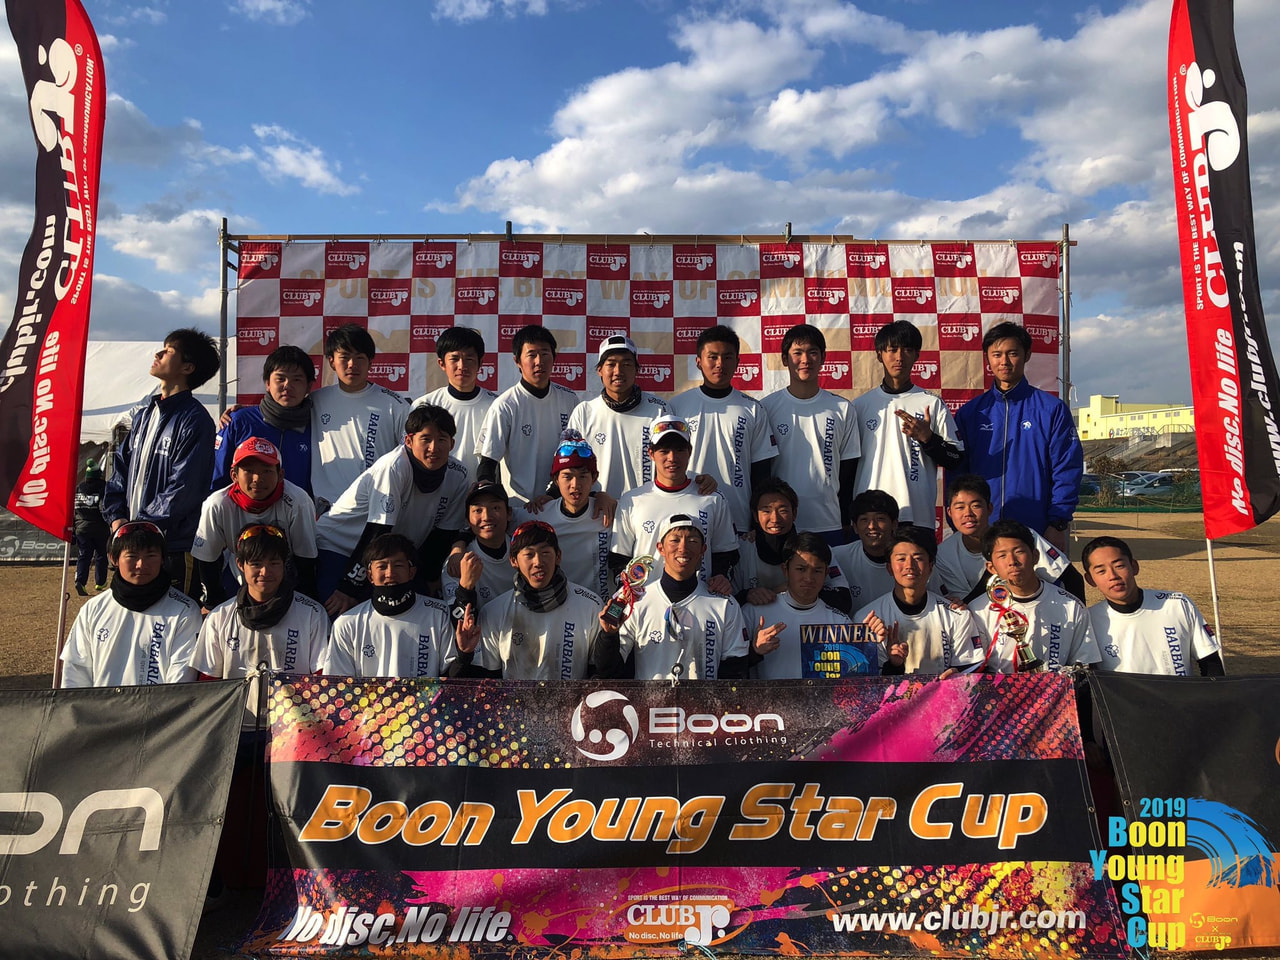 CLUBJr主催2019Boon Young Star Cup